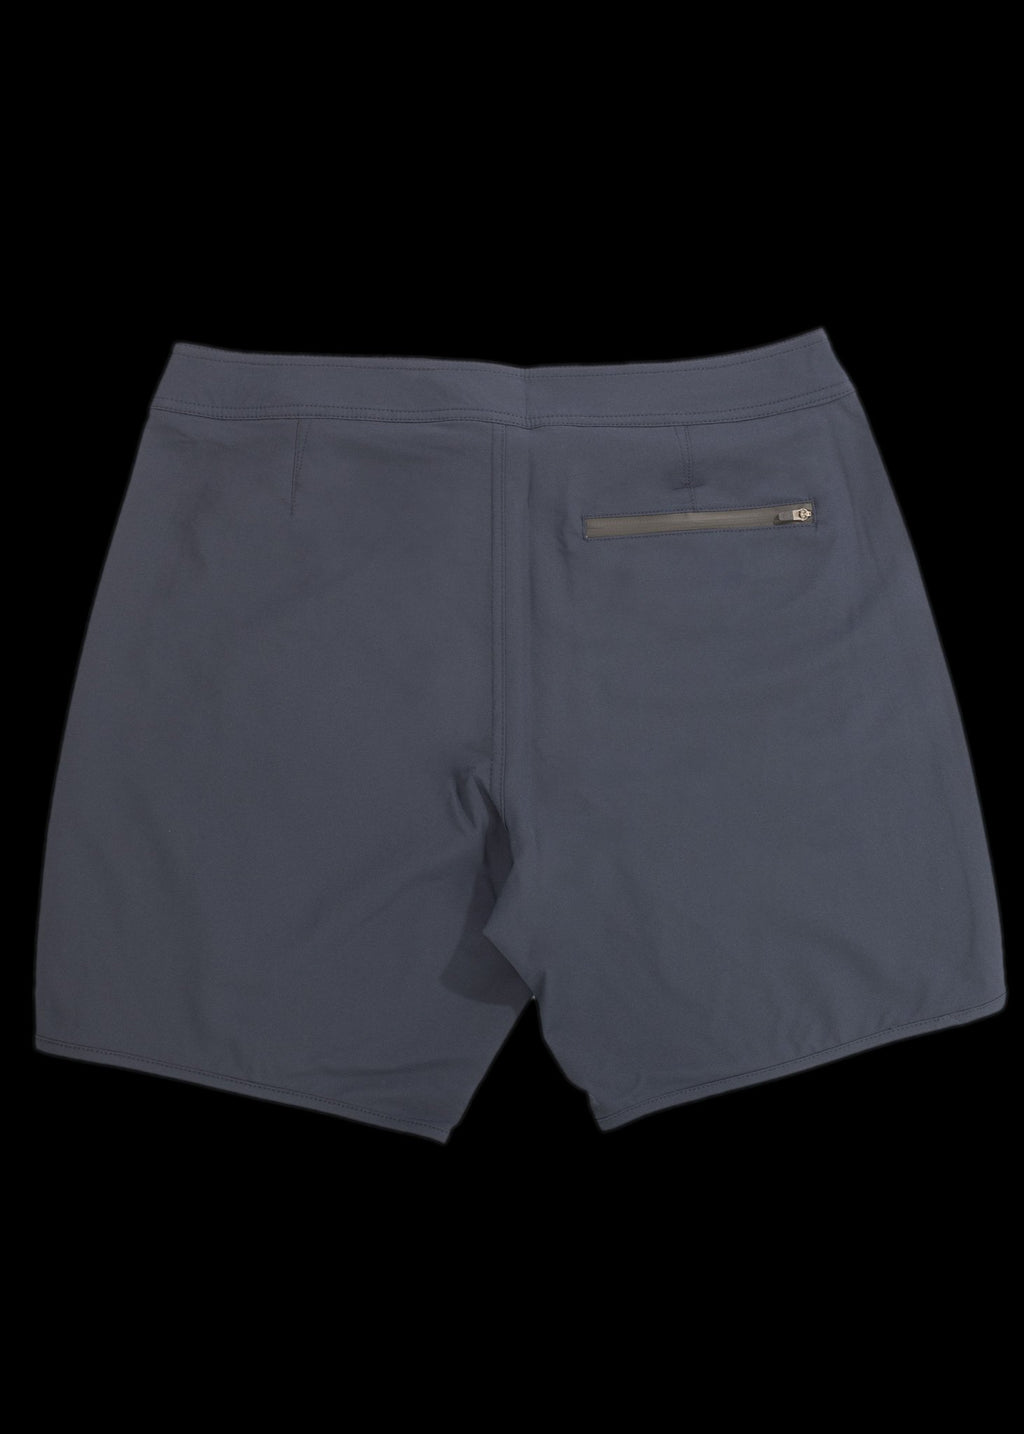 needessentials navy premium scallop boardshorts